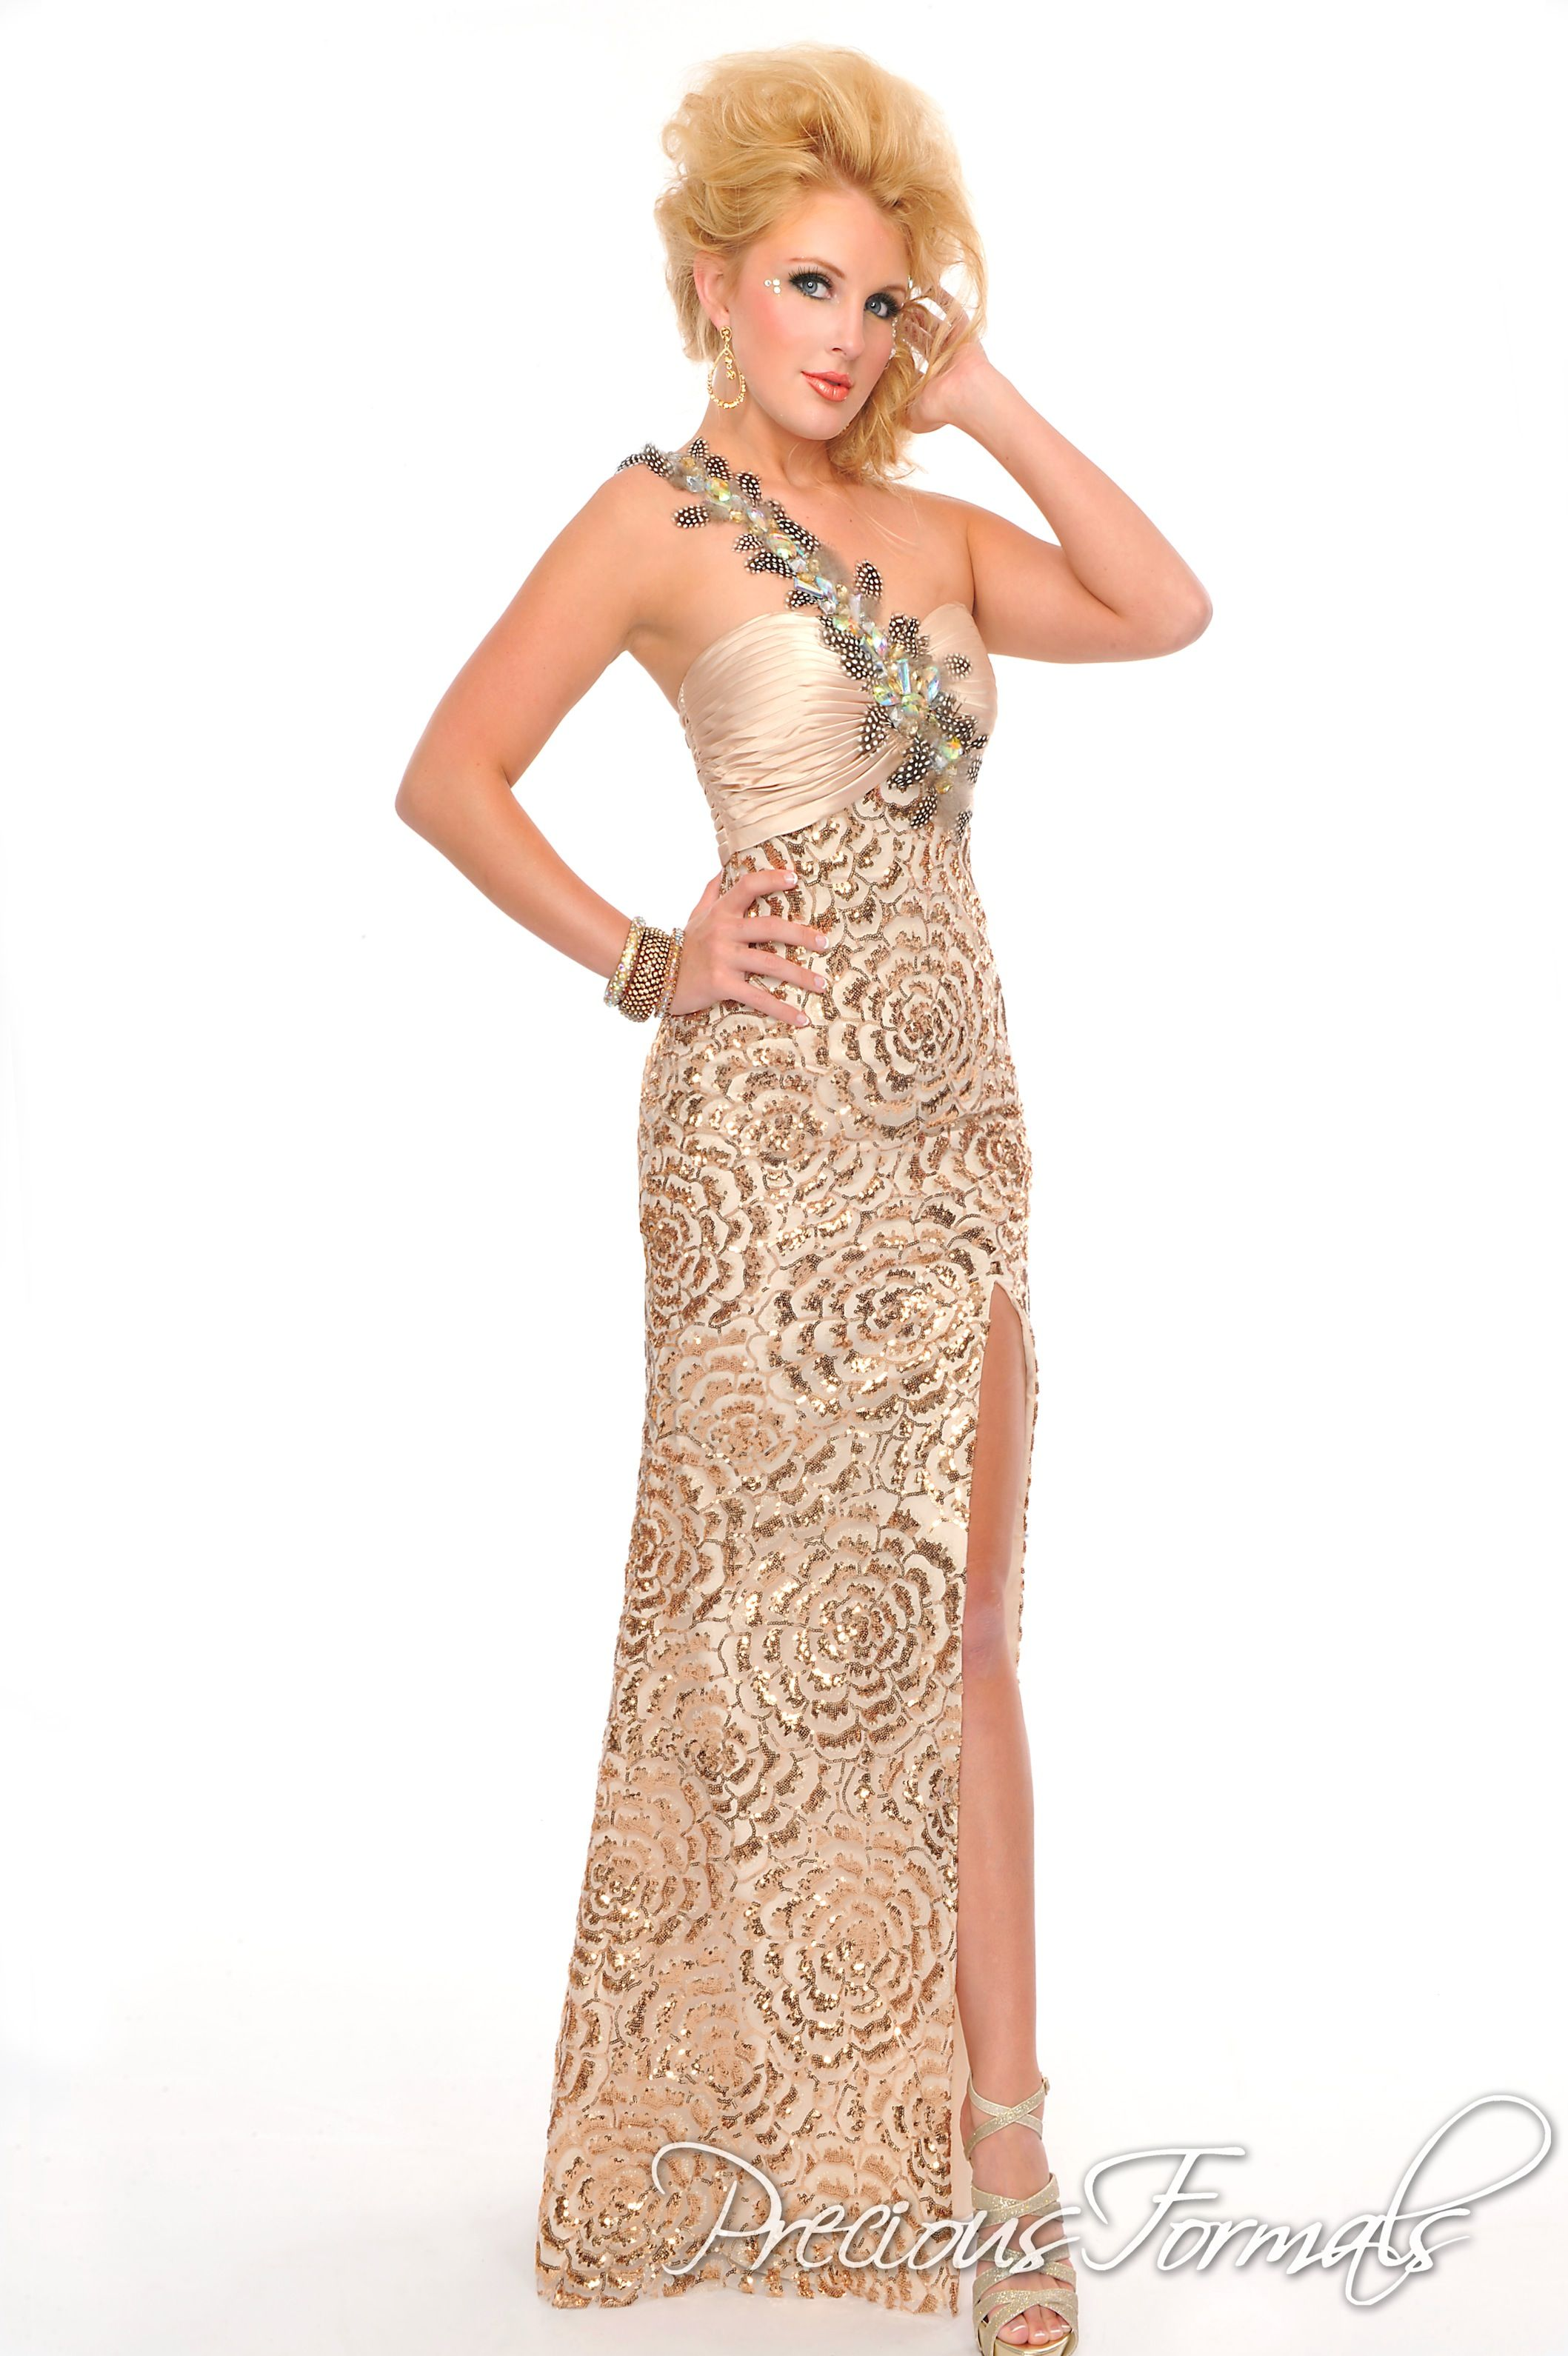 Nude Gold Gown From Precious Formals My Style Pinterest Gold Gown